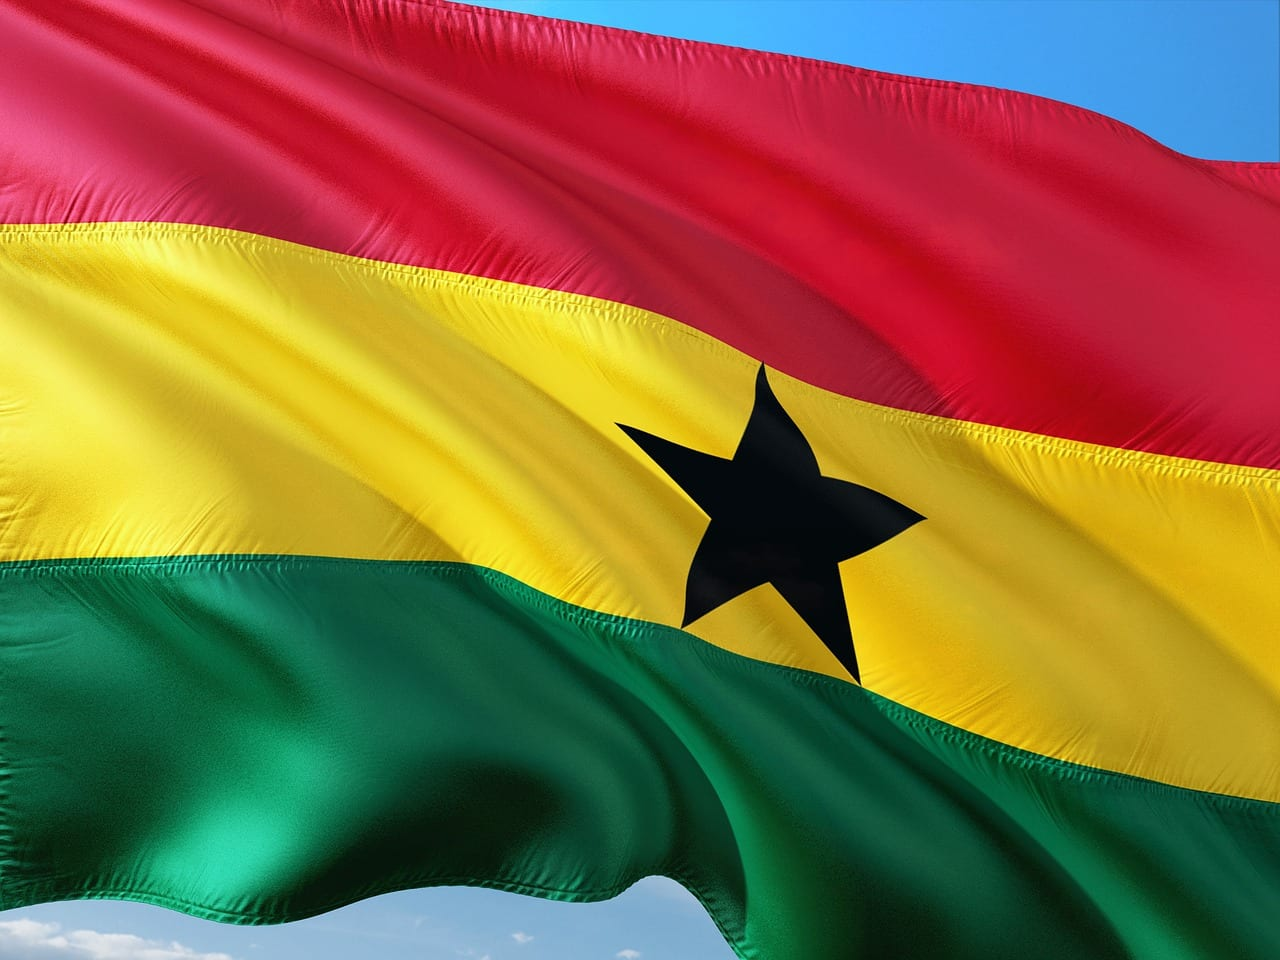 Over and above all, it is Ghana first